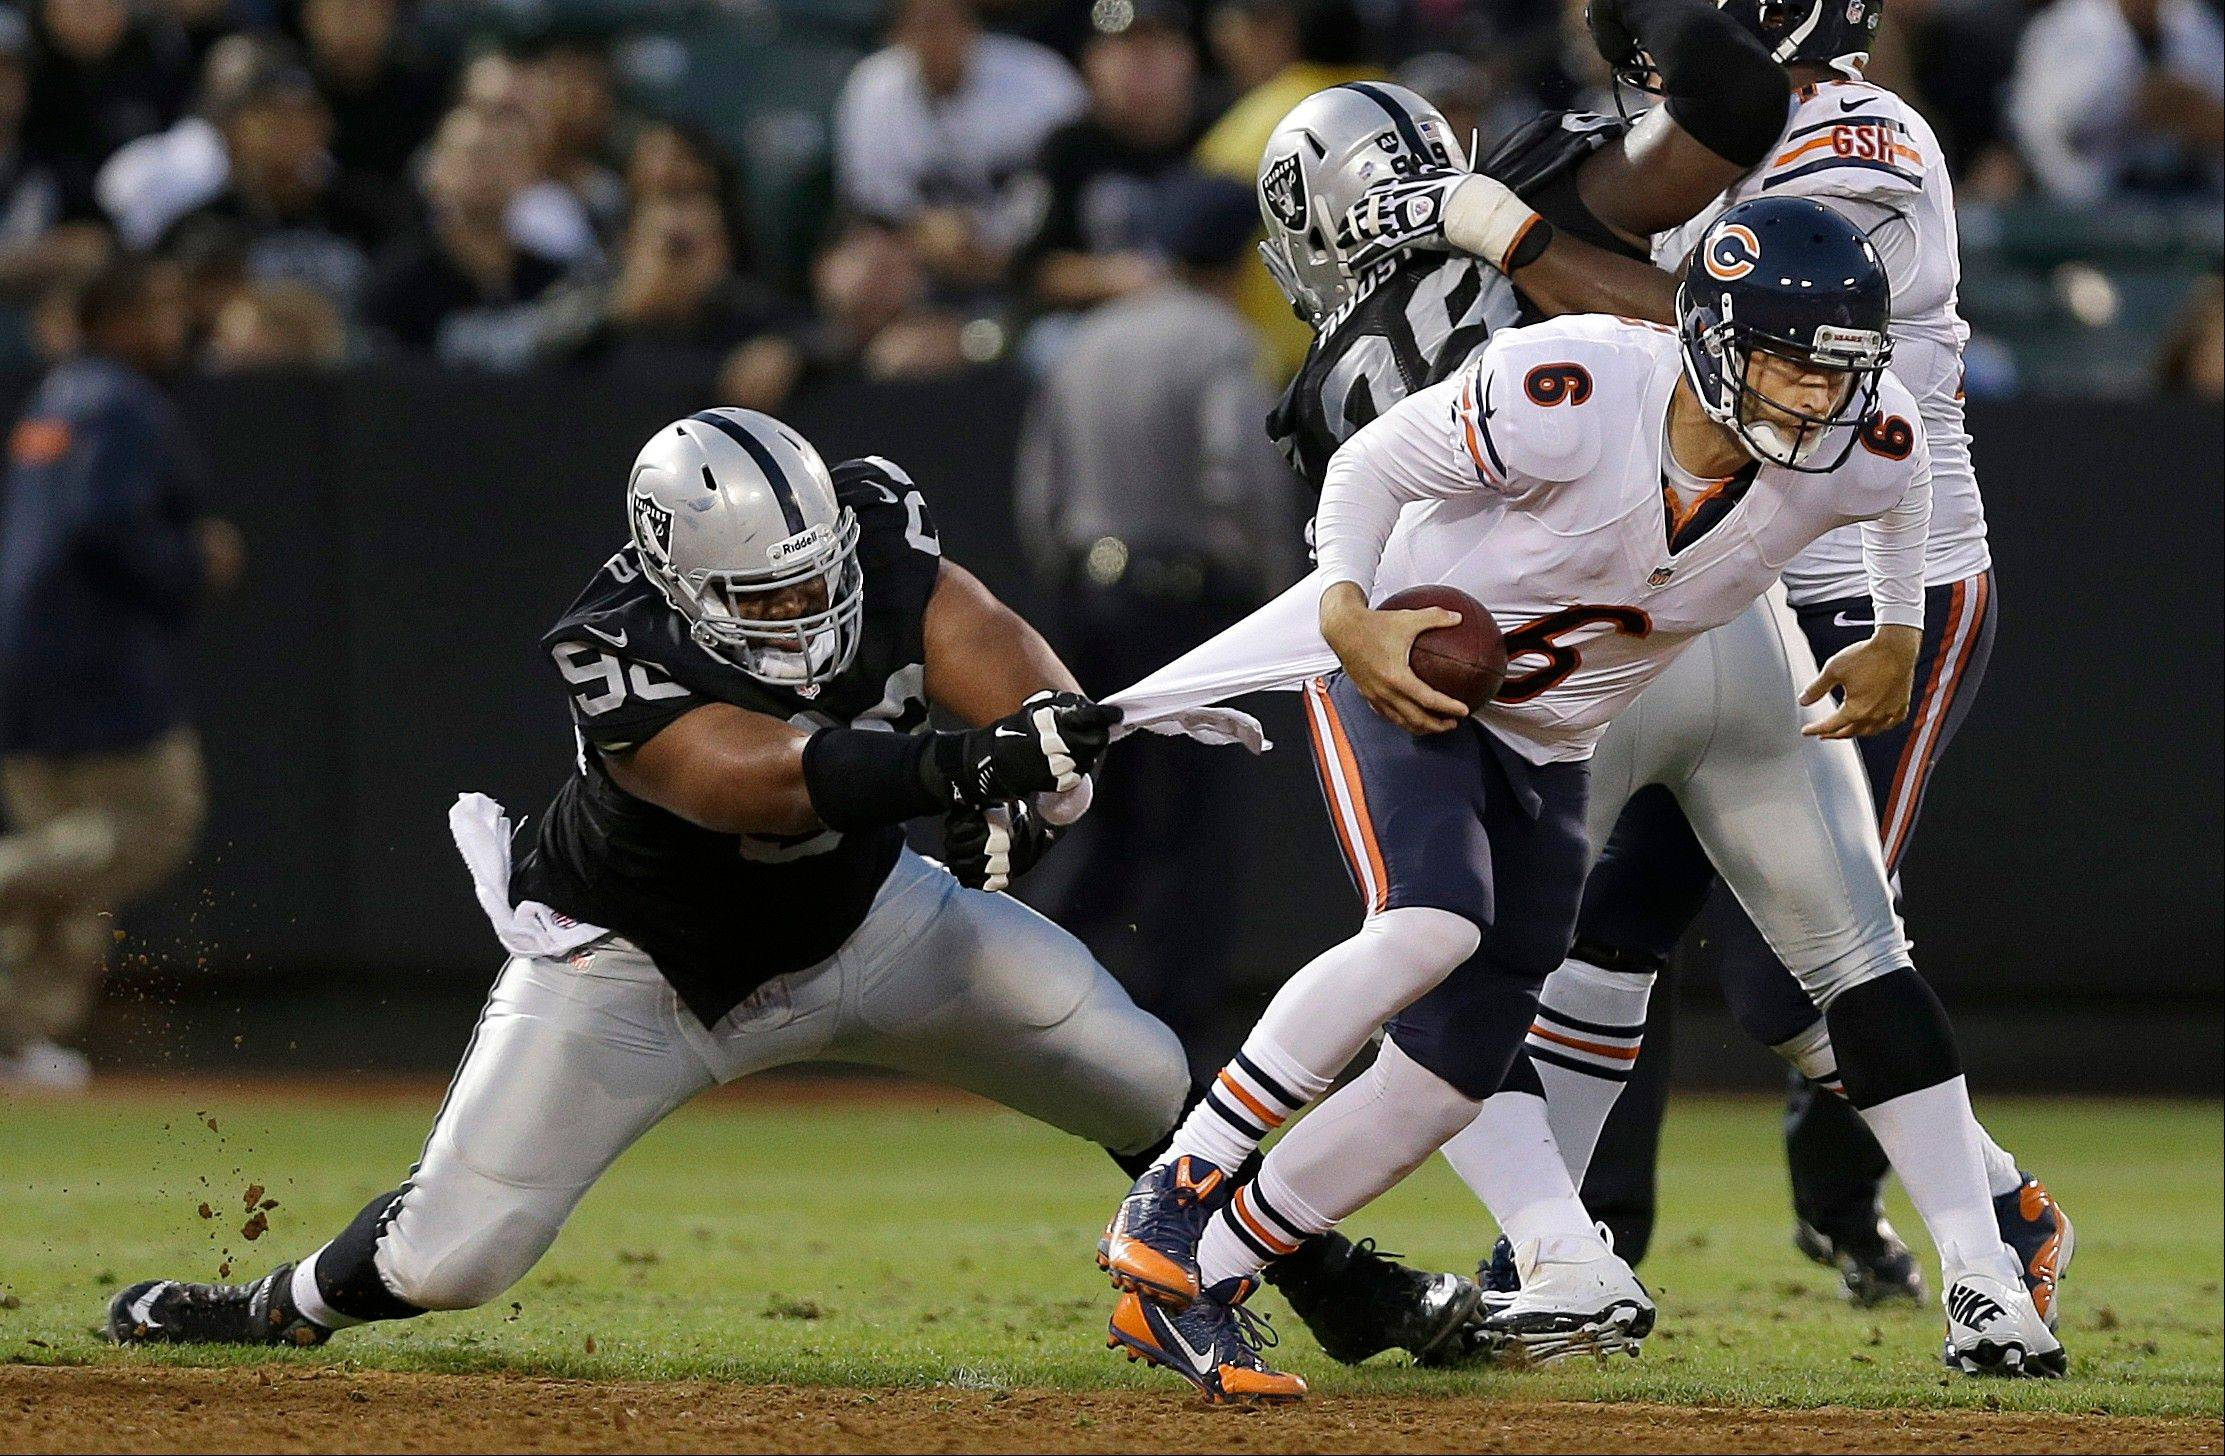 Chicago Bears quarterback Jay Cutler (6) escapes the grasp of Oakland Raiders defensive tackle Vance Walker (98) during the second quarter.